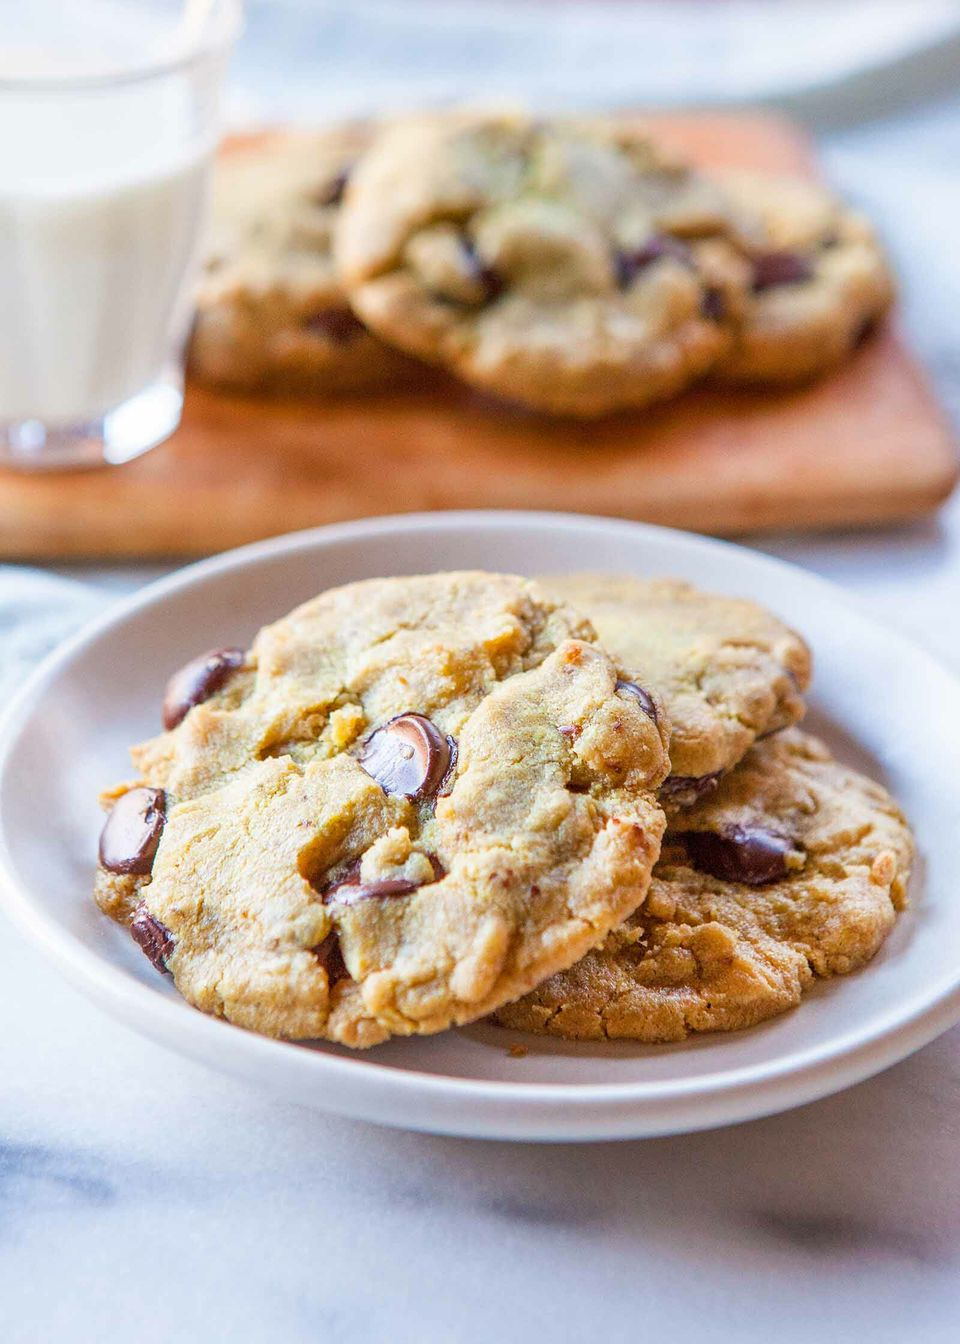 Allergy-Friendly Peanut Butter Chocolate Chip Cookies